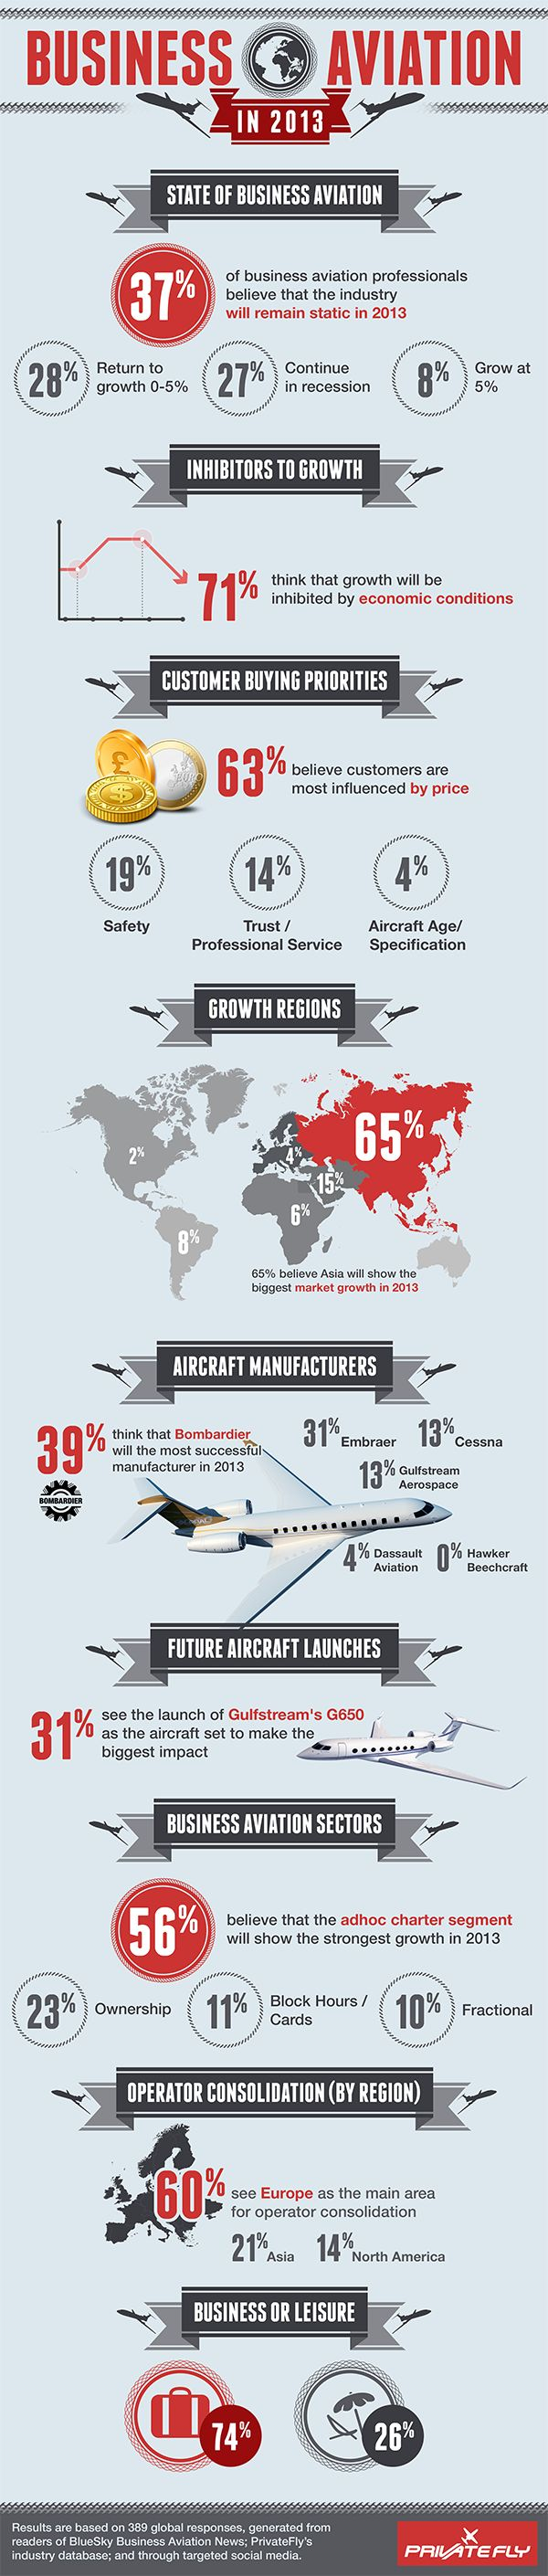 PrivateFly surveyed the Business Aviation industry to find out their views on business aviation in 2013 including: - business aviation growth in 2013